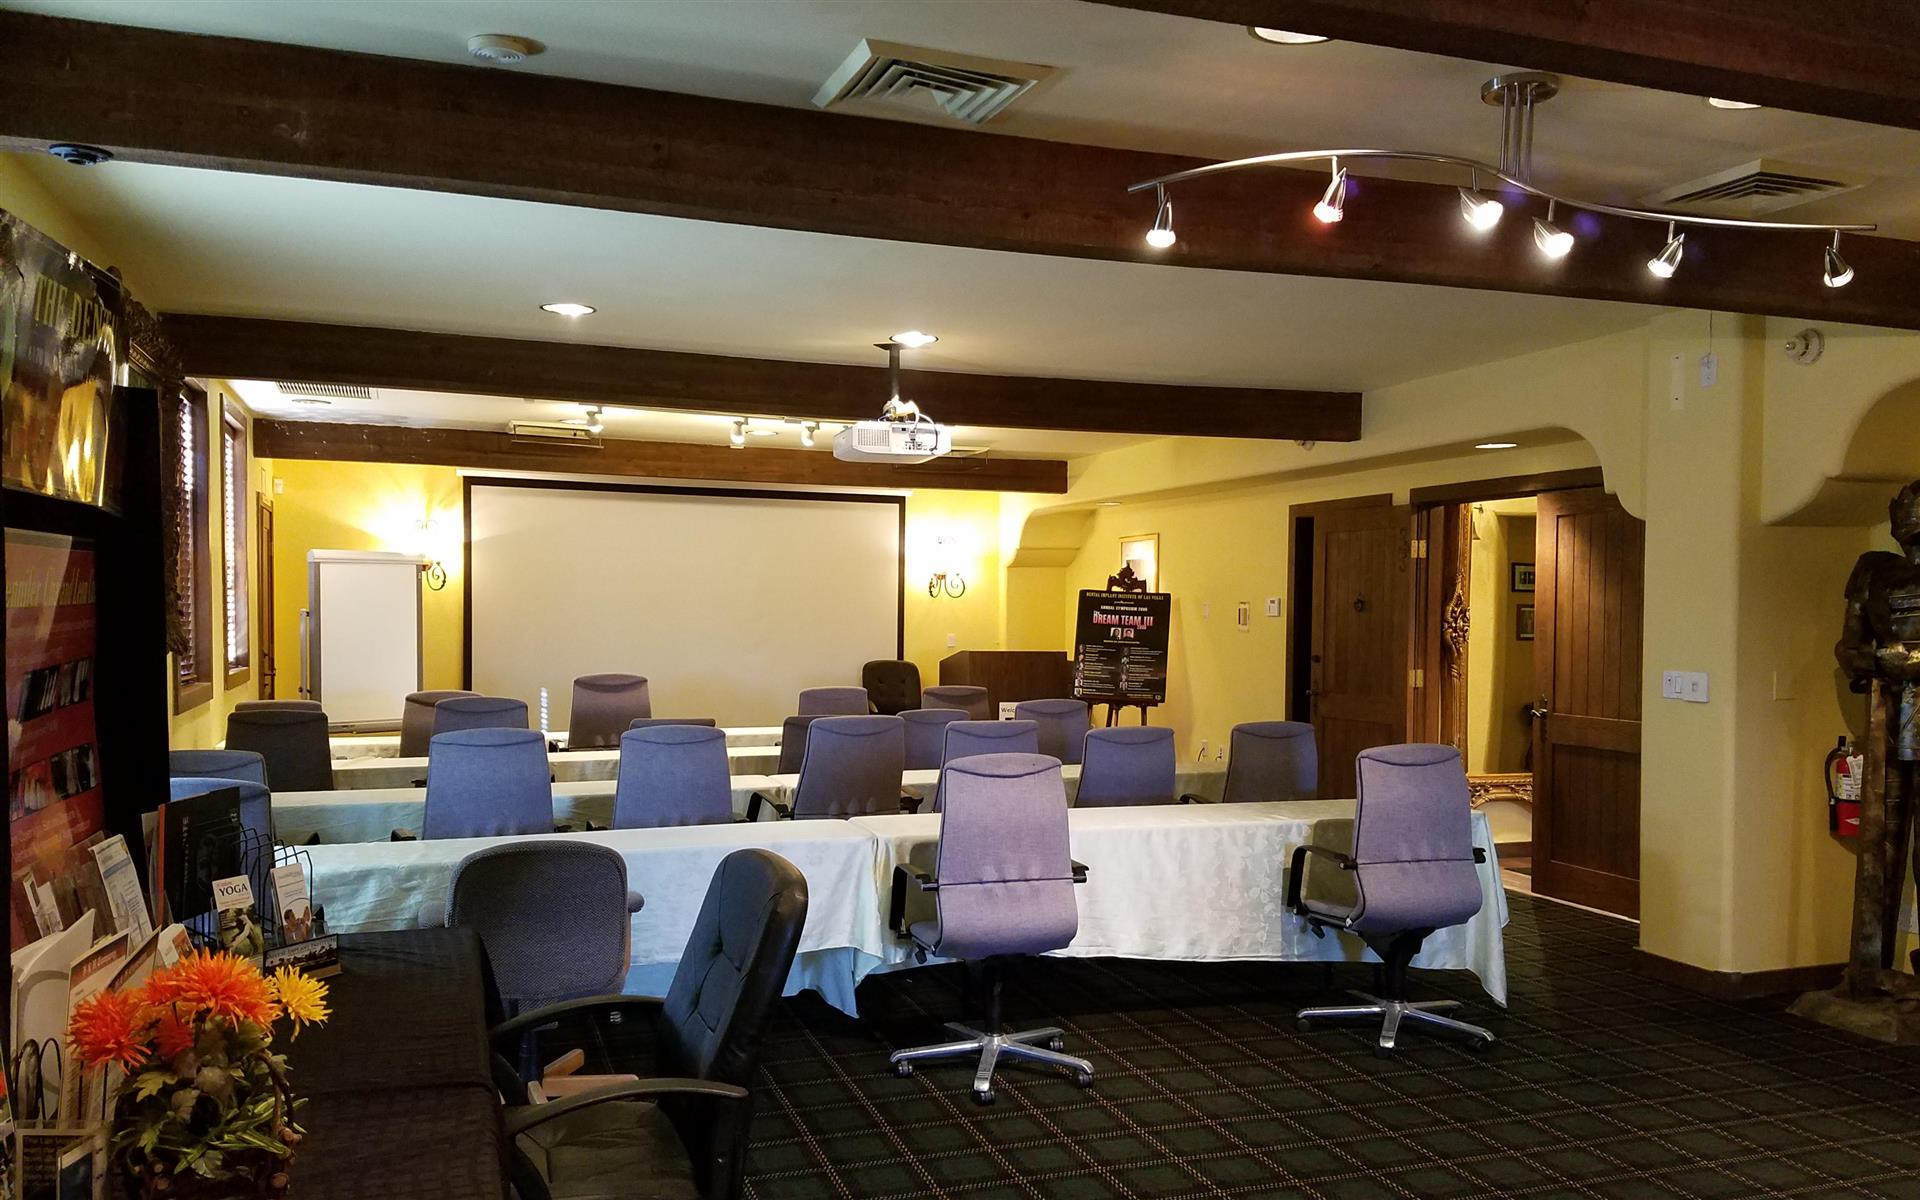 Las Vegas Periodontal Care - Training/Seminar Room